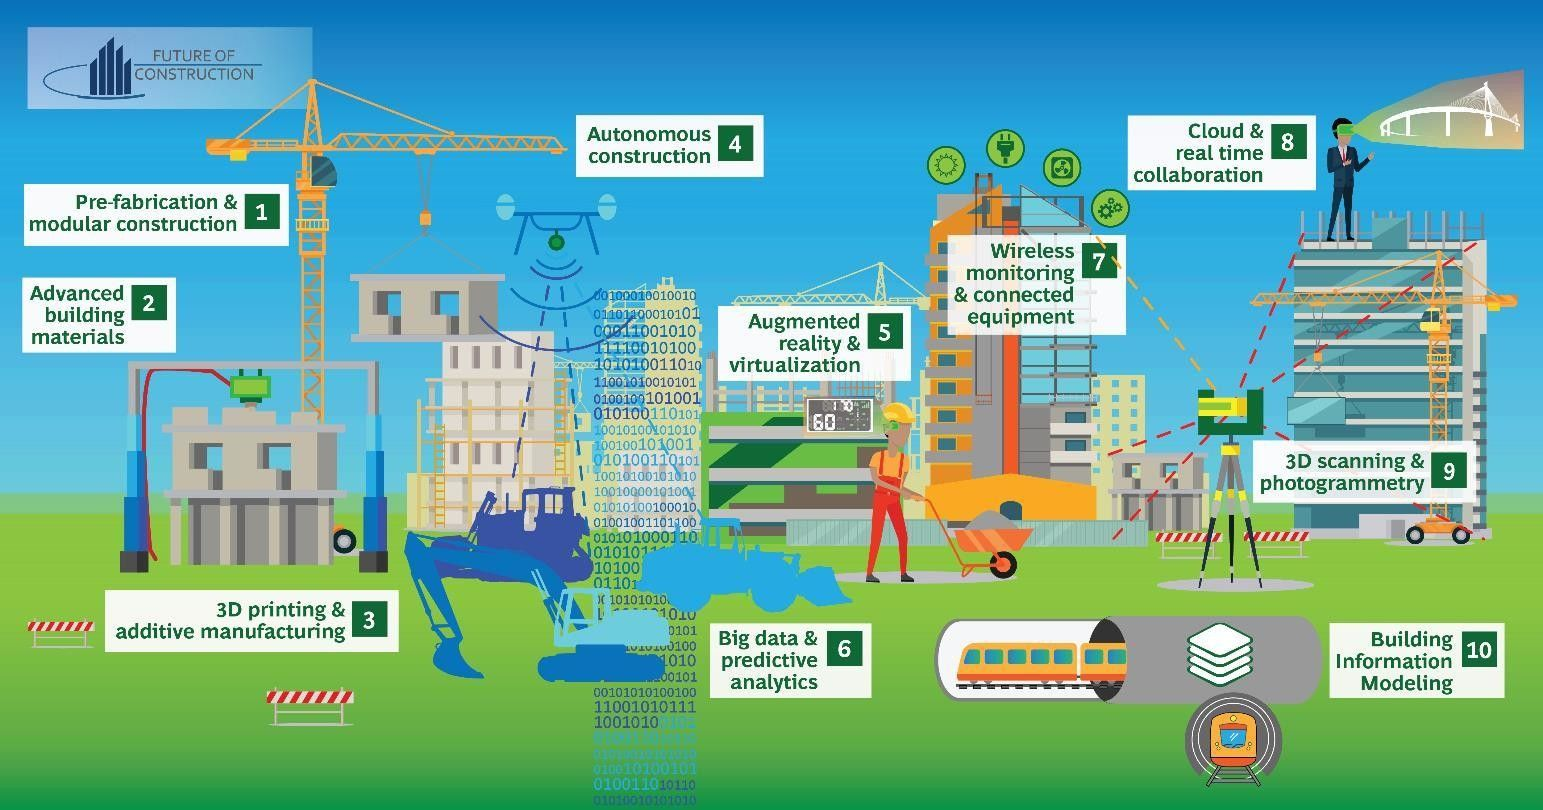 Industry 4 0 Technologies In Construction Sector Fourth Industrial Revolution Industrial Revolution Construction